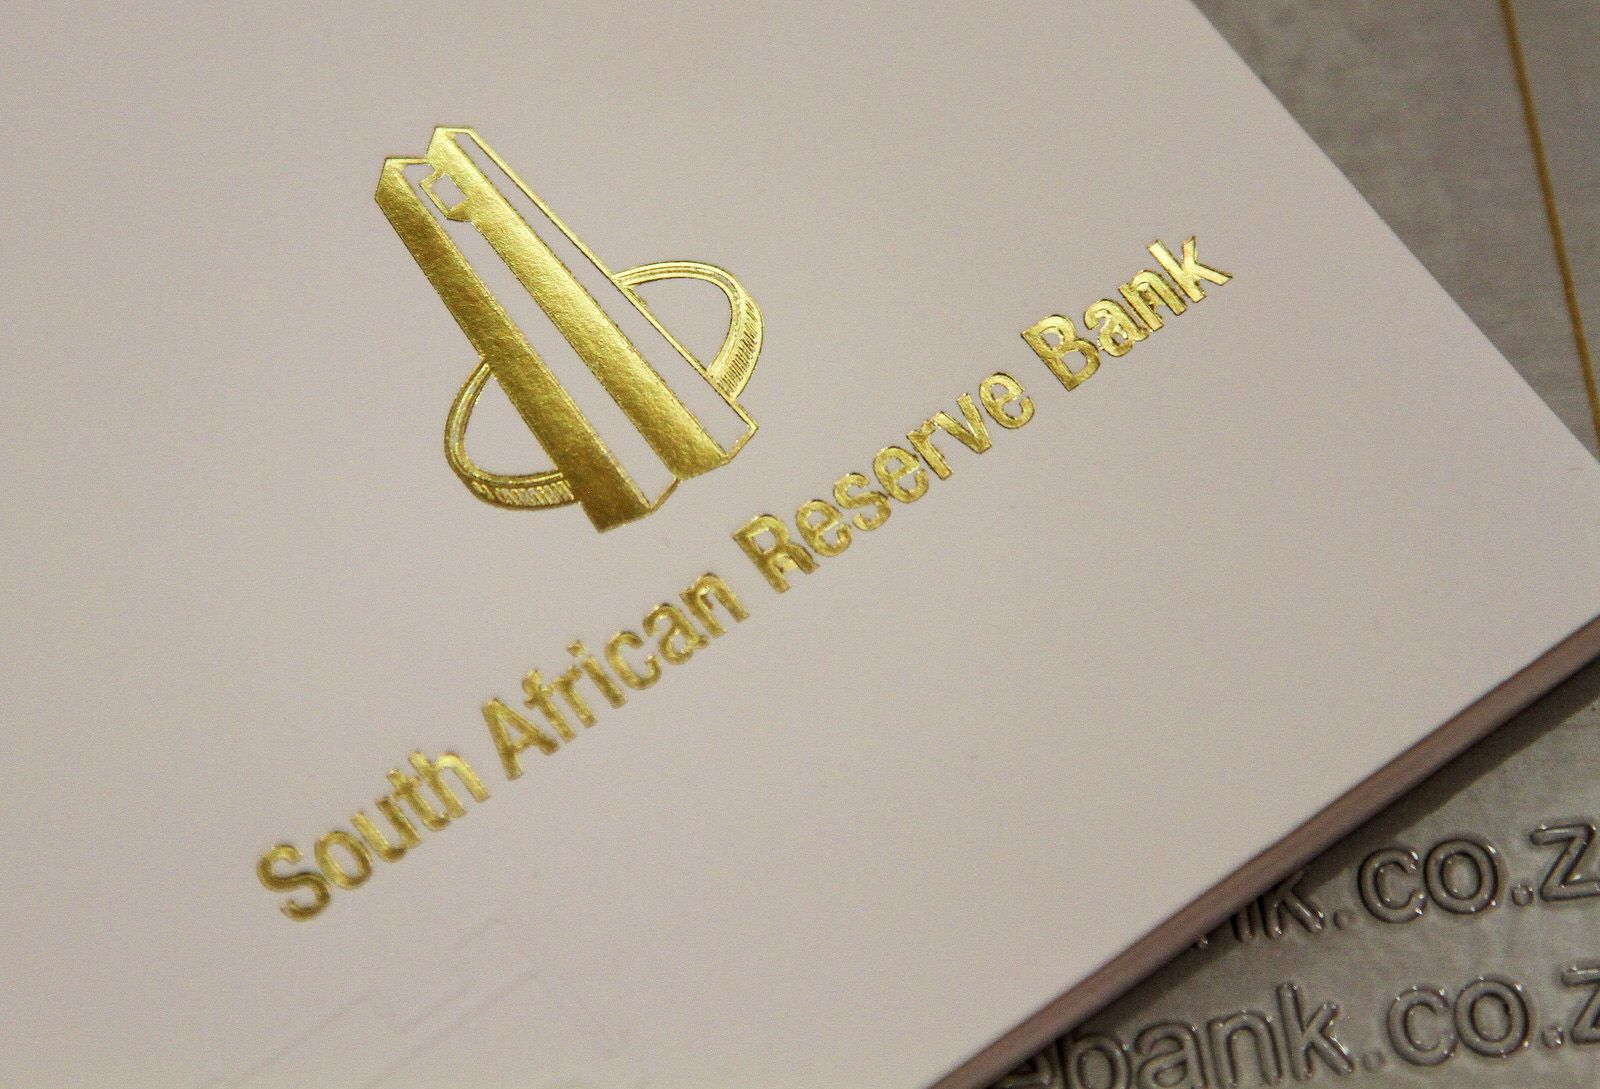 South Africa's ANC Proposes That Central Bank Be State-Owned